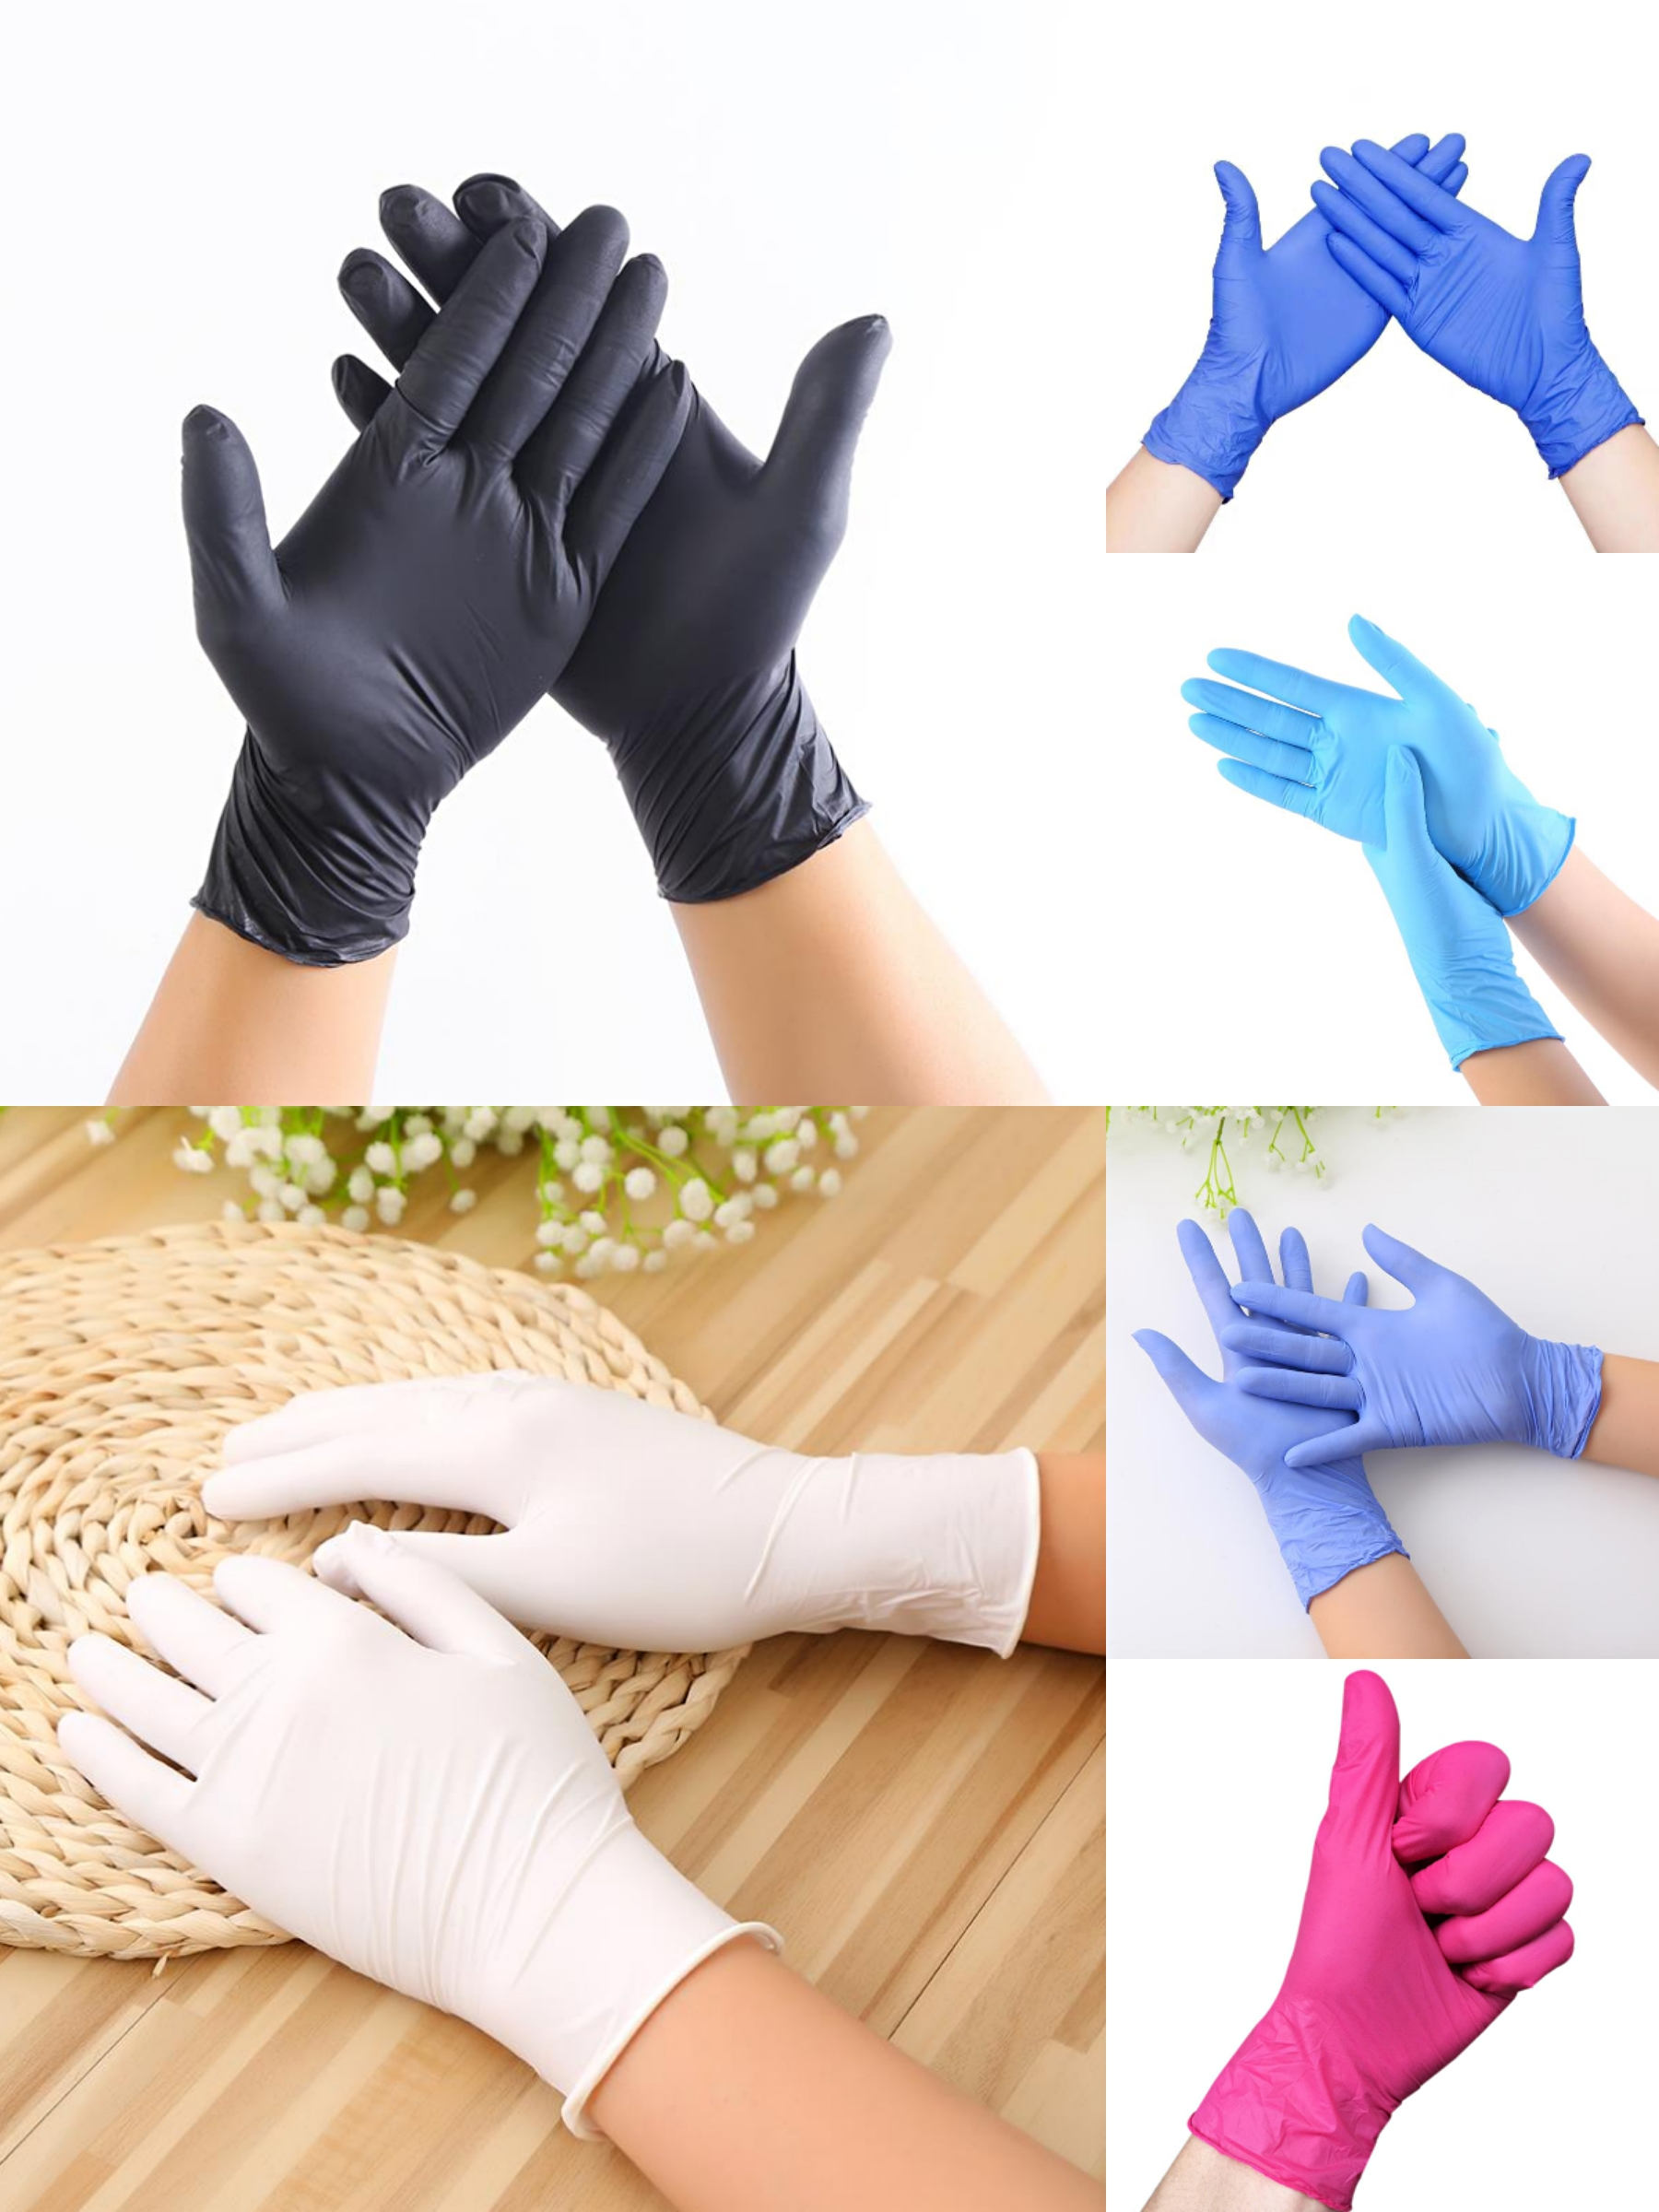 100pcs Wear-resistant And Durable Nitrile Disposable Gloves Rubber Latex Food Medical Household Anti-static Cleaning Gloves